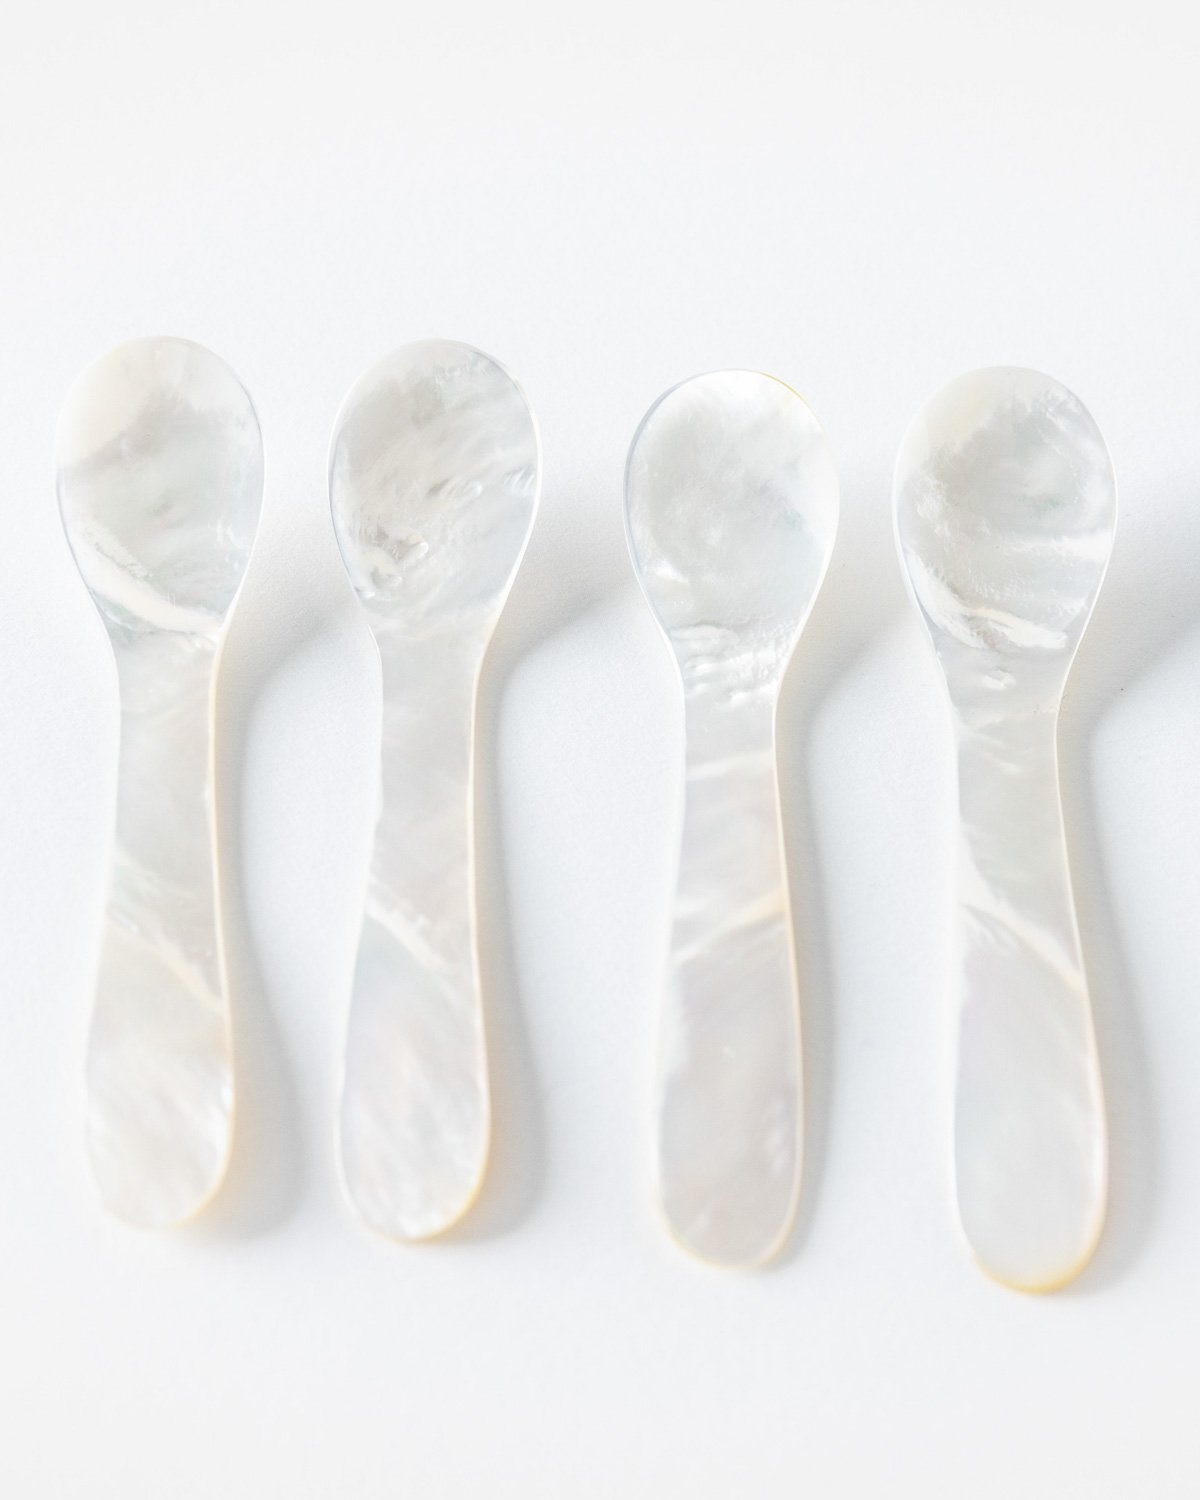 Medium Shell Spoons - YGN Collective